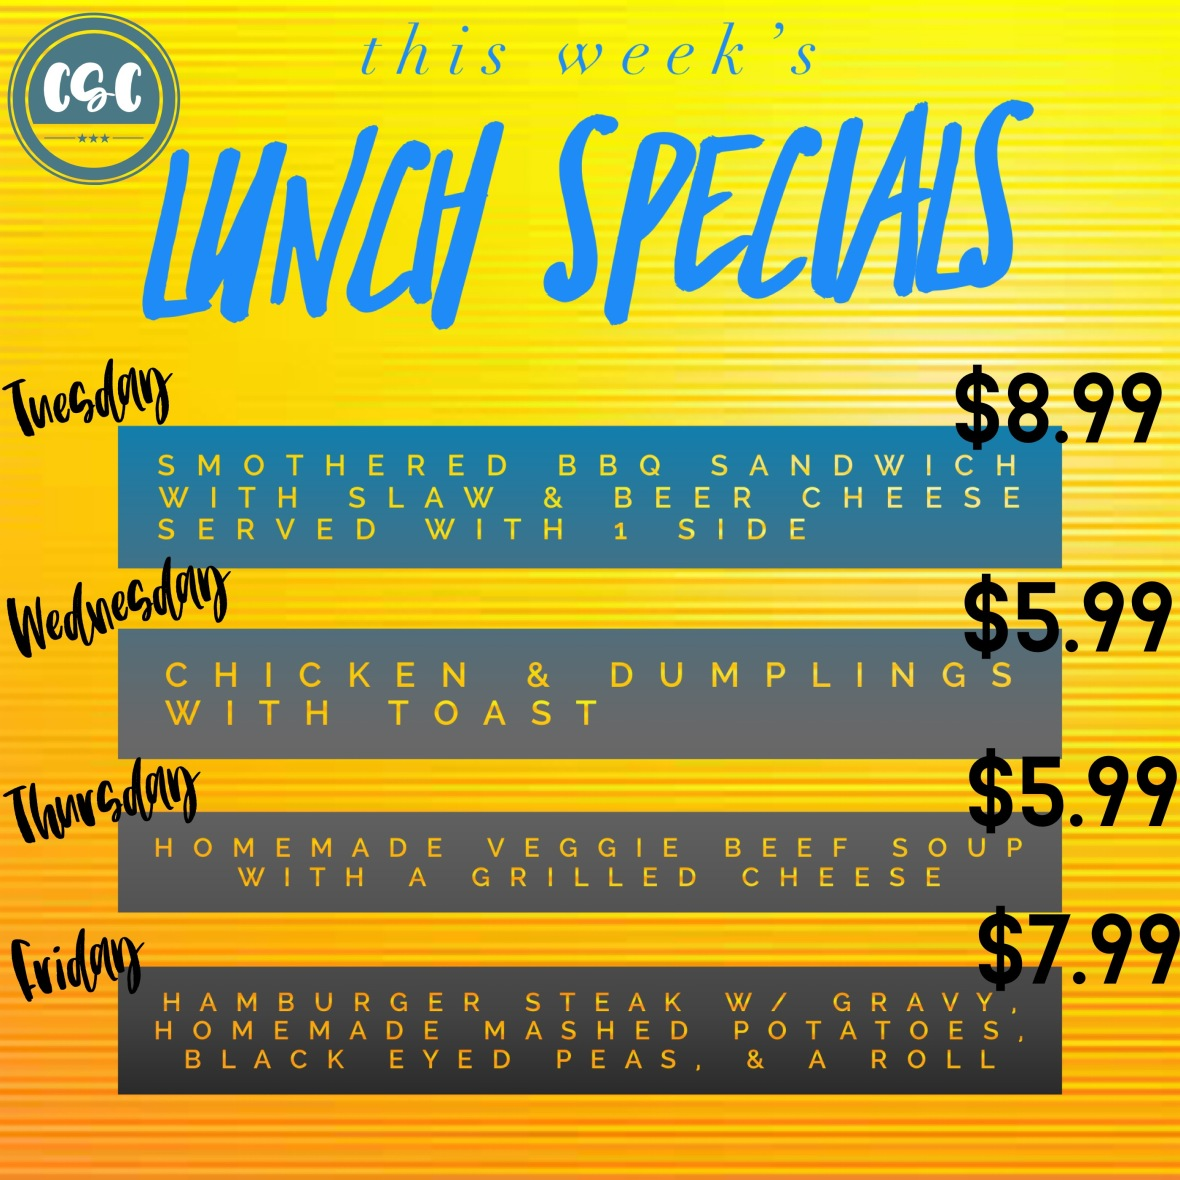 lunch specials feb 2